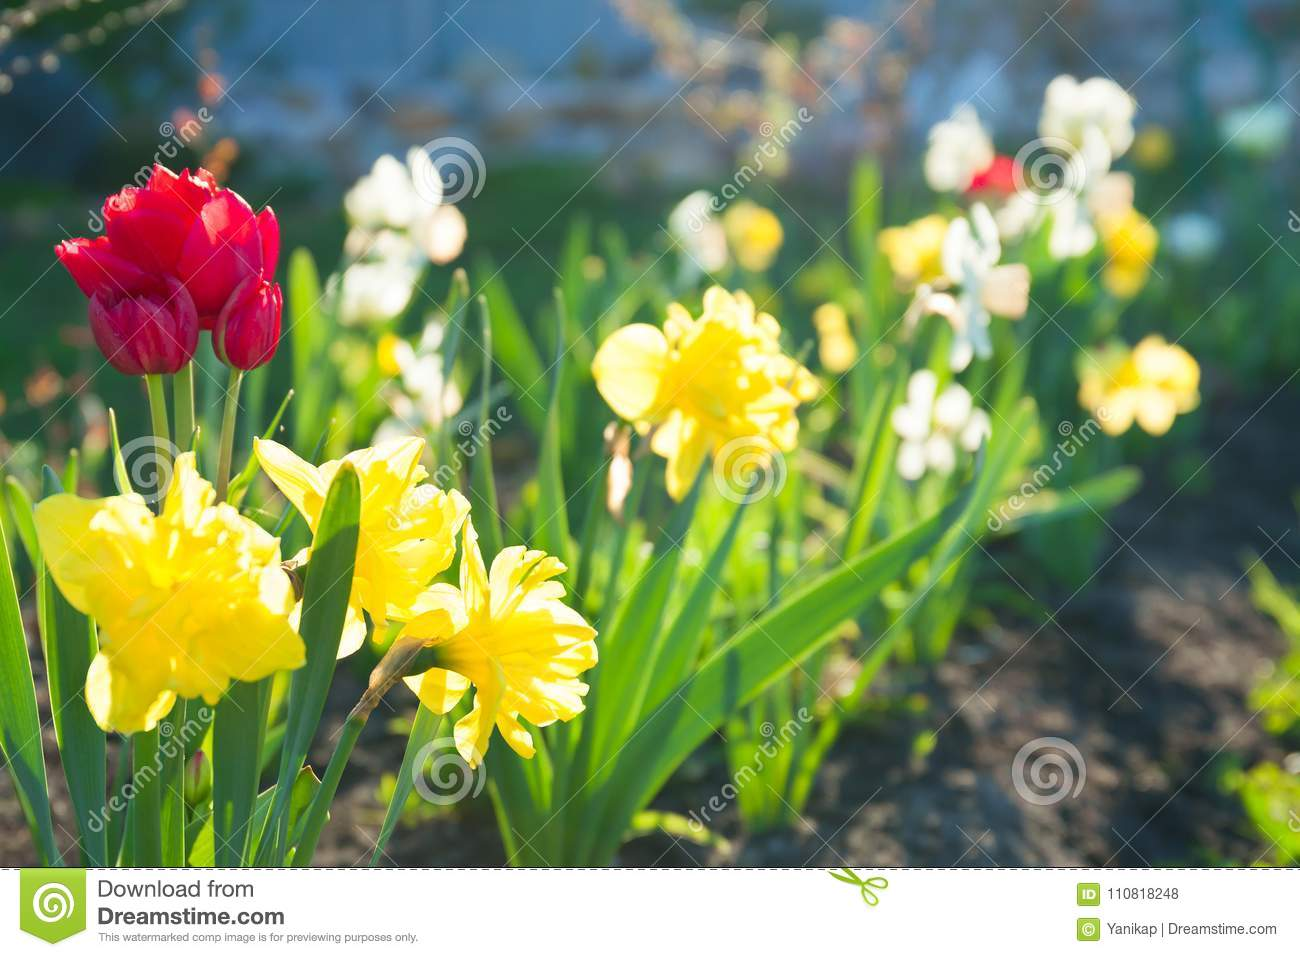 Spring flowers daffodils and tulips flowering in garden on a flo download spring flowers daffodils and tulips flowering in garden on a flo stock photo image mightylinksfo